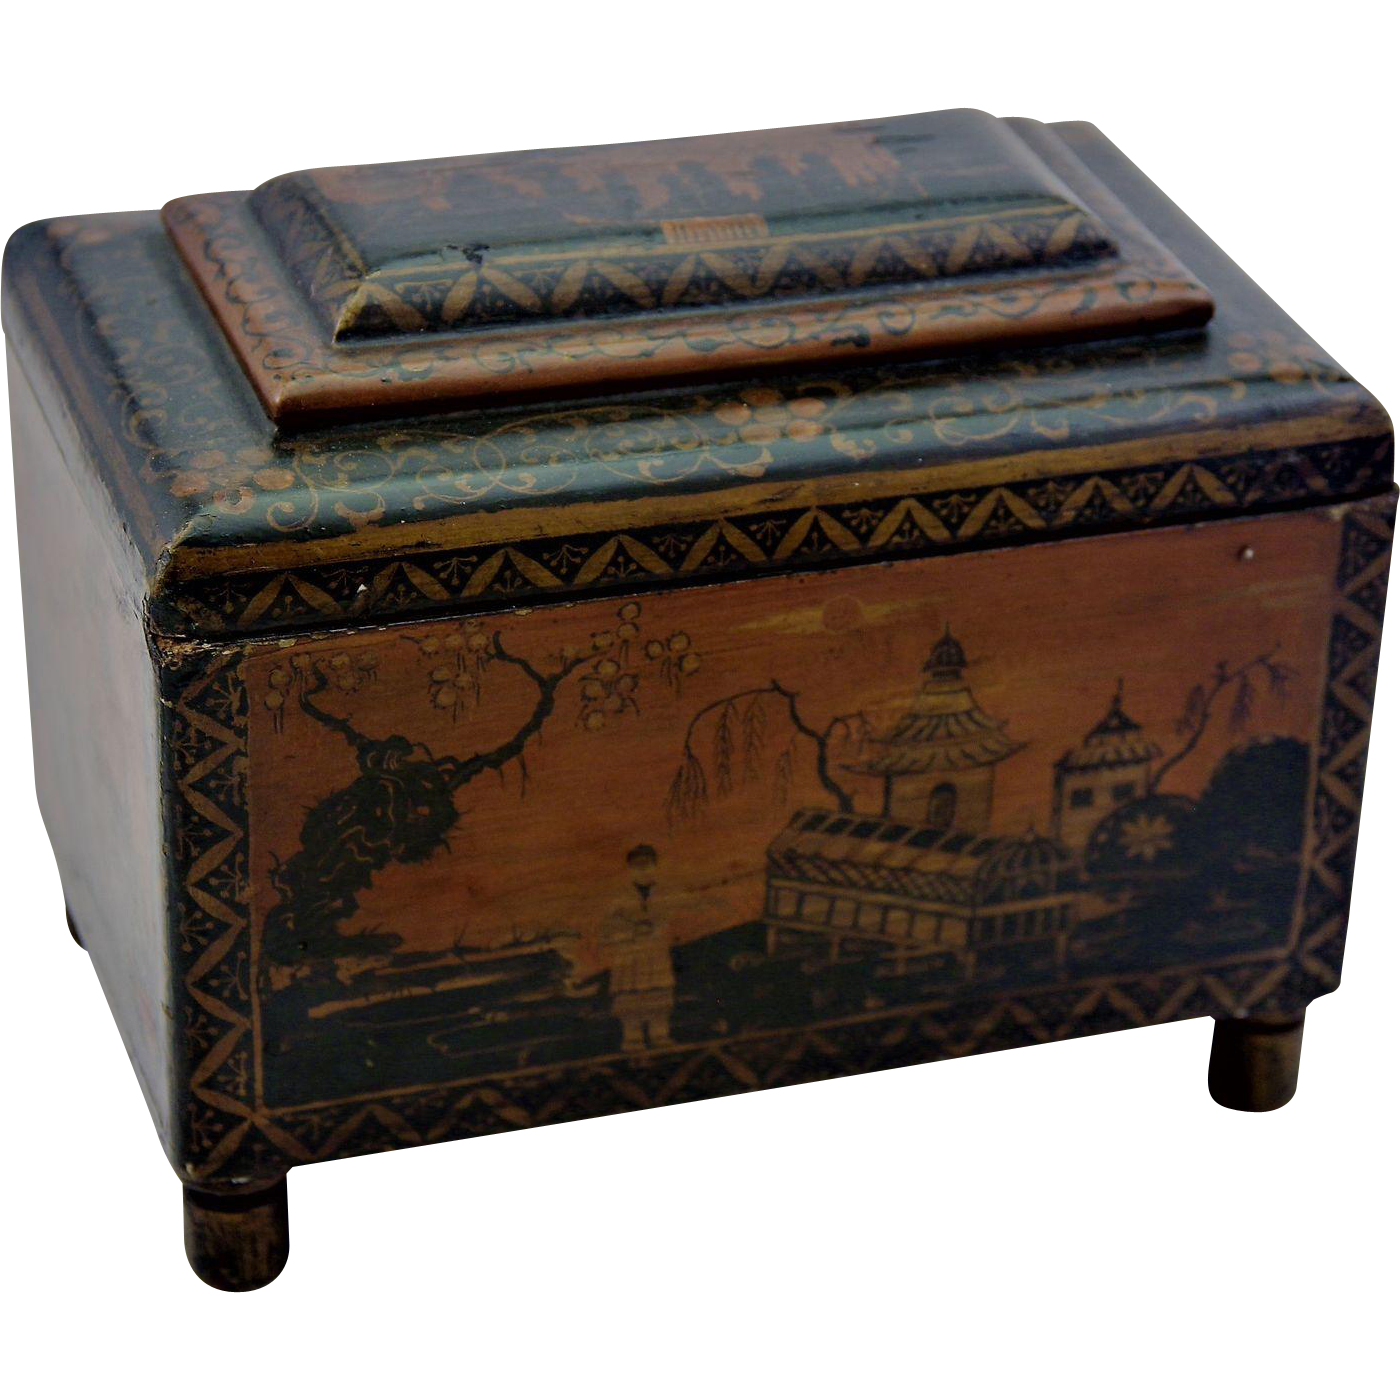 georgian penwork tea caddy box intricate chinoiserie decoration c1800 from cambridge antiques on. Black Bedroom Furniture Sets. Home Design Ideas